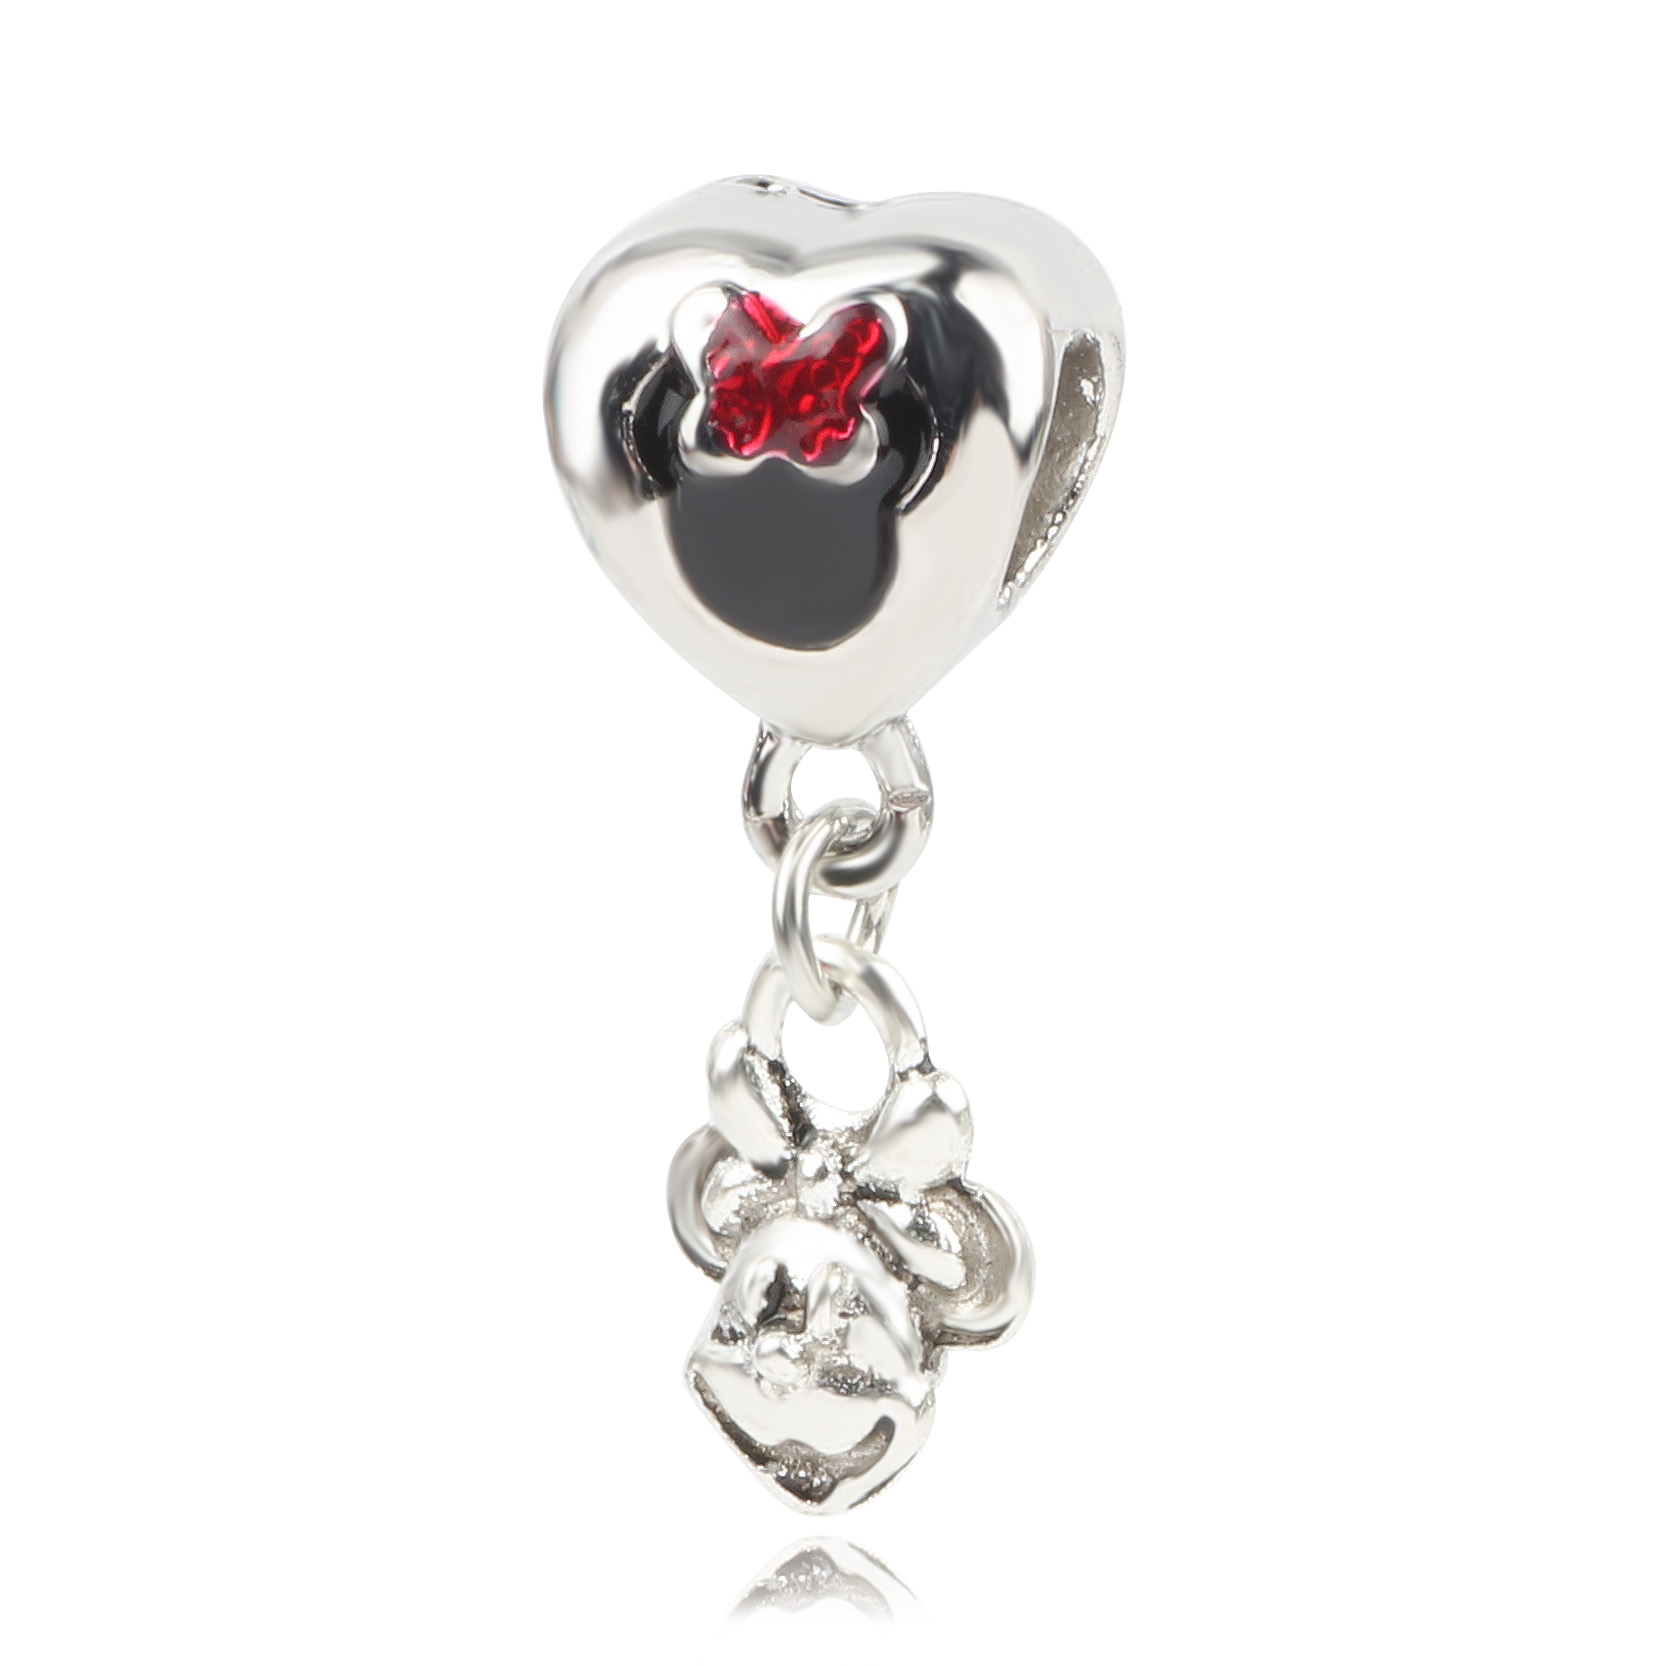 New Original Silver Bead MOM Scooter Dinosaur Fish Fan Castle Bear Pendant Charm Fit Pandora Bracelet Necklace DIY Women Jewelry in Beads from Jewelry Accessories